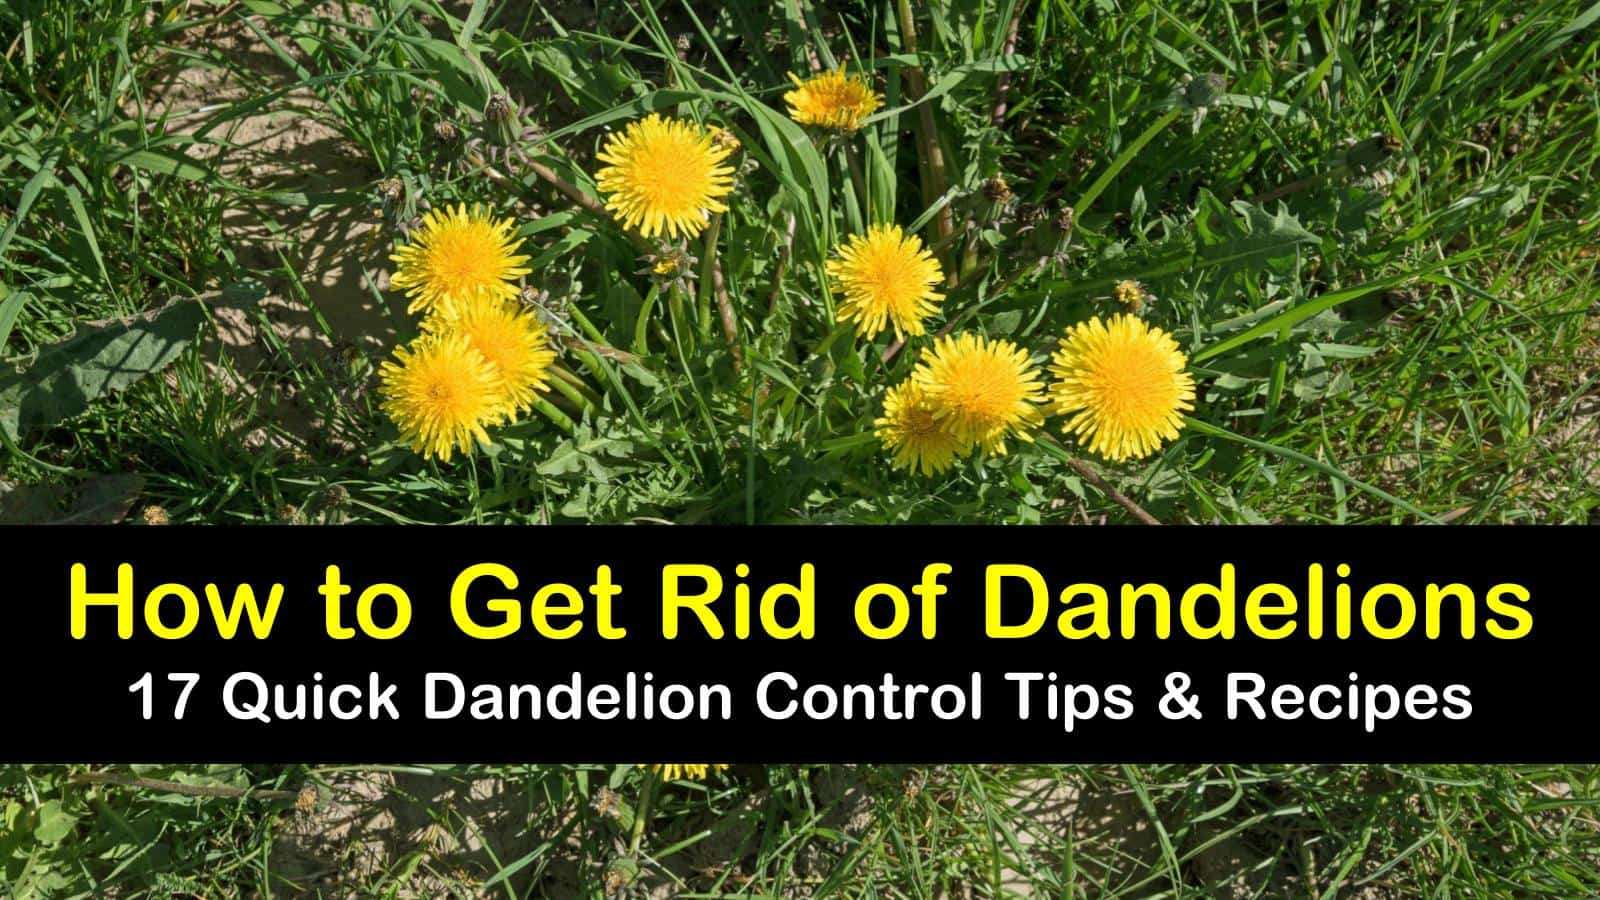 how to get rid of dandelions titleimg1